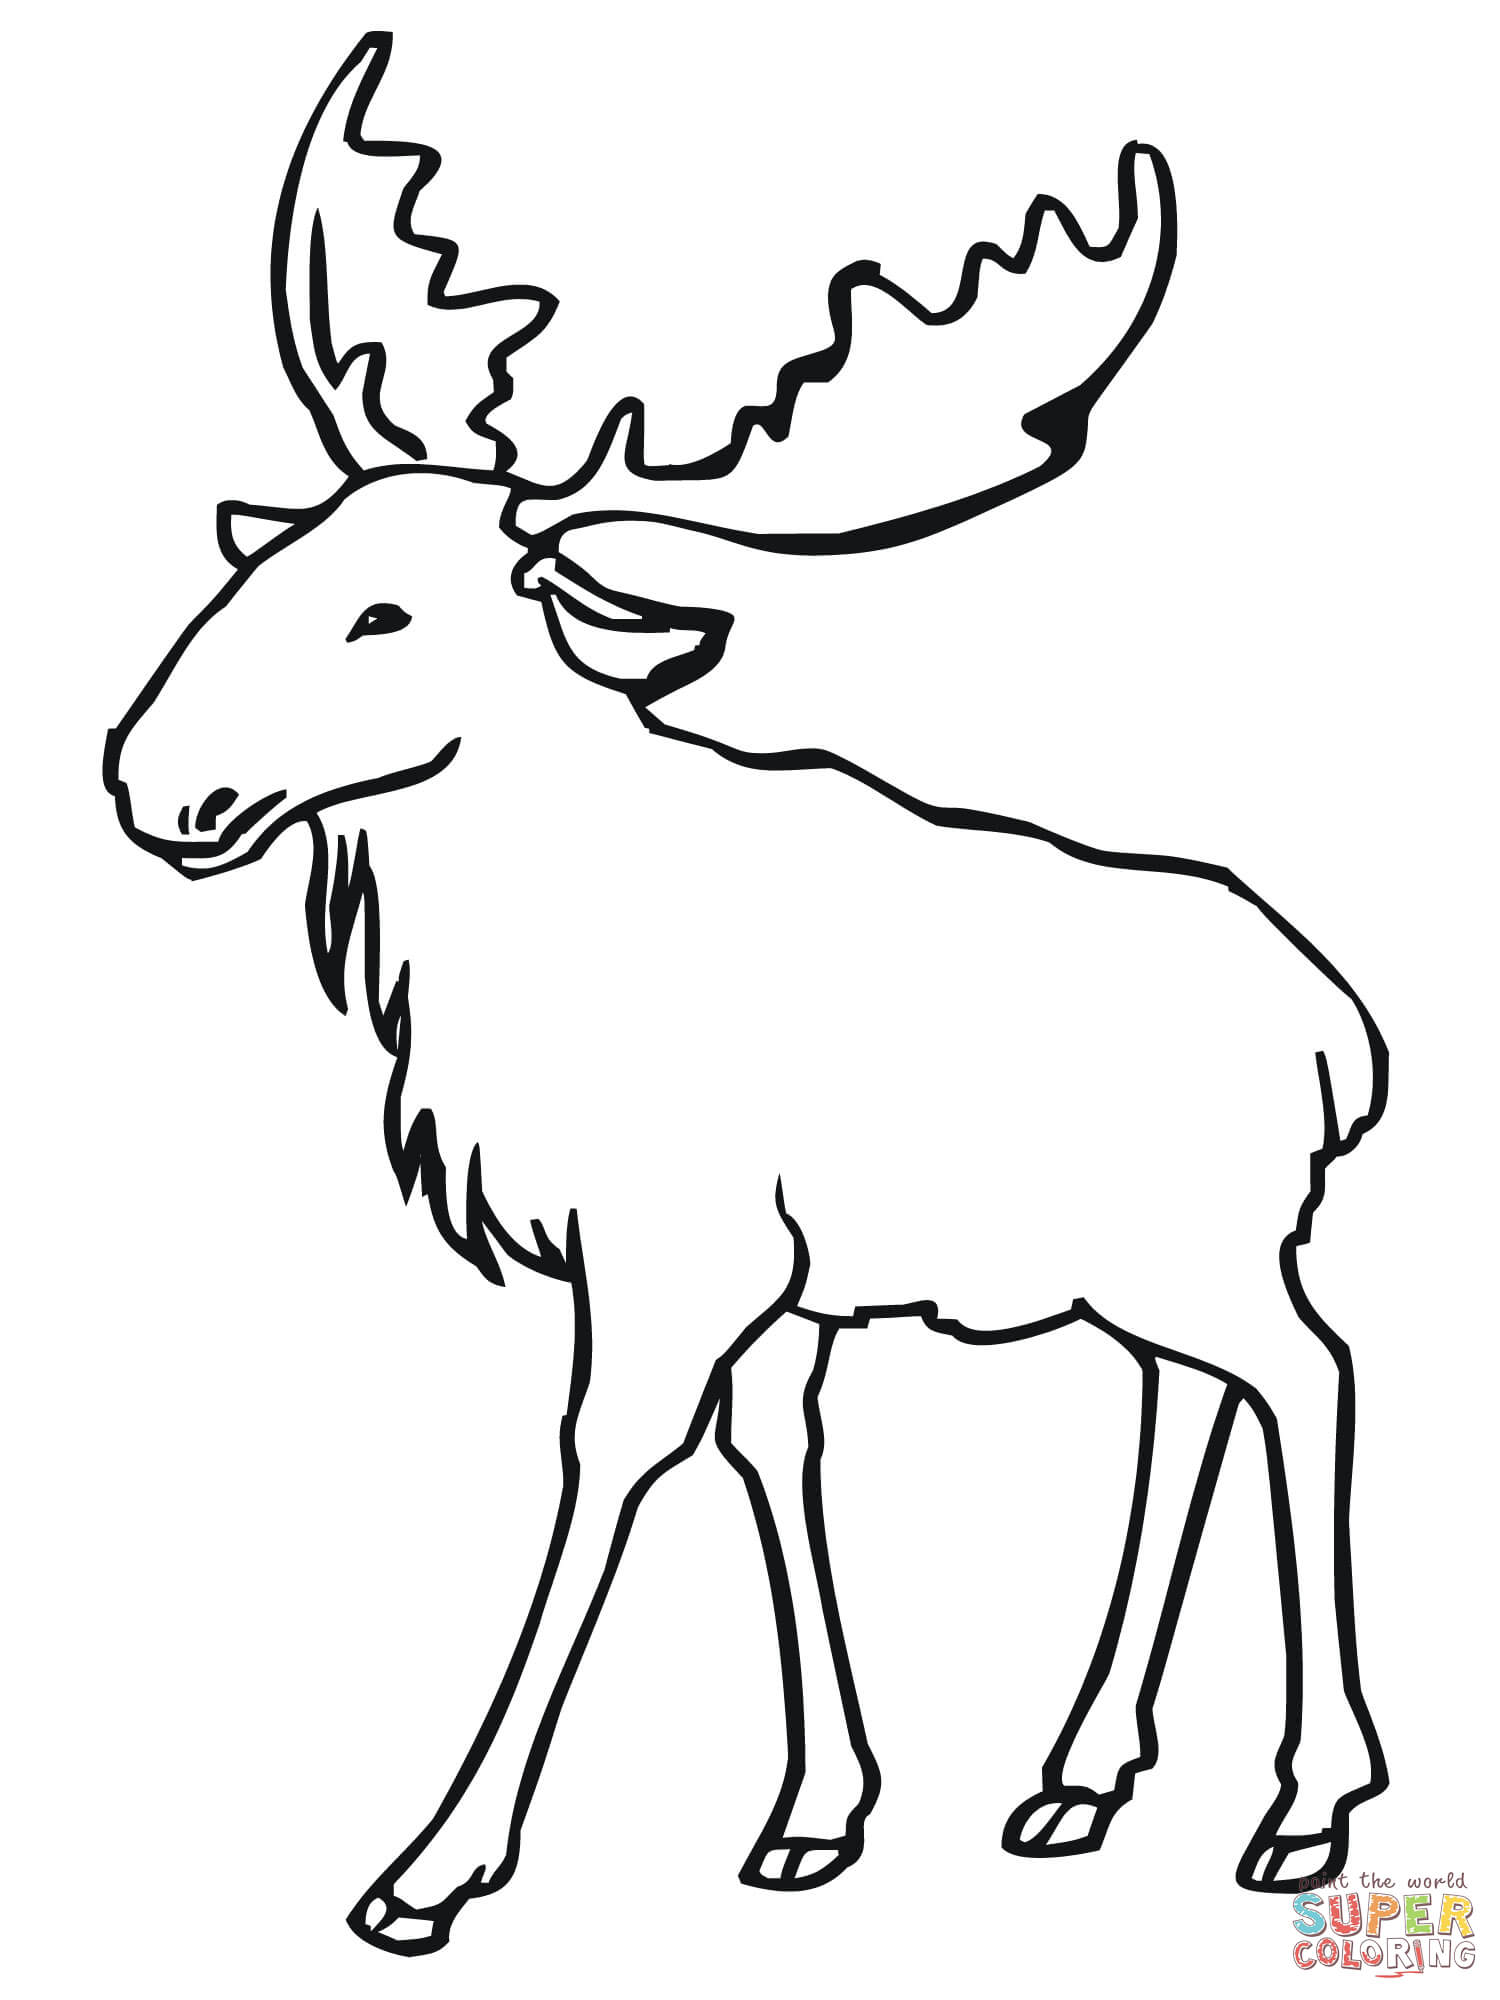 Moose Skull Drawing at GetDrawings.com | Free for personal use Moose ...